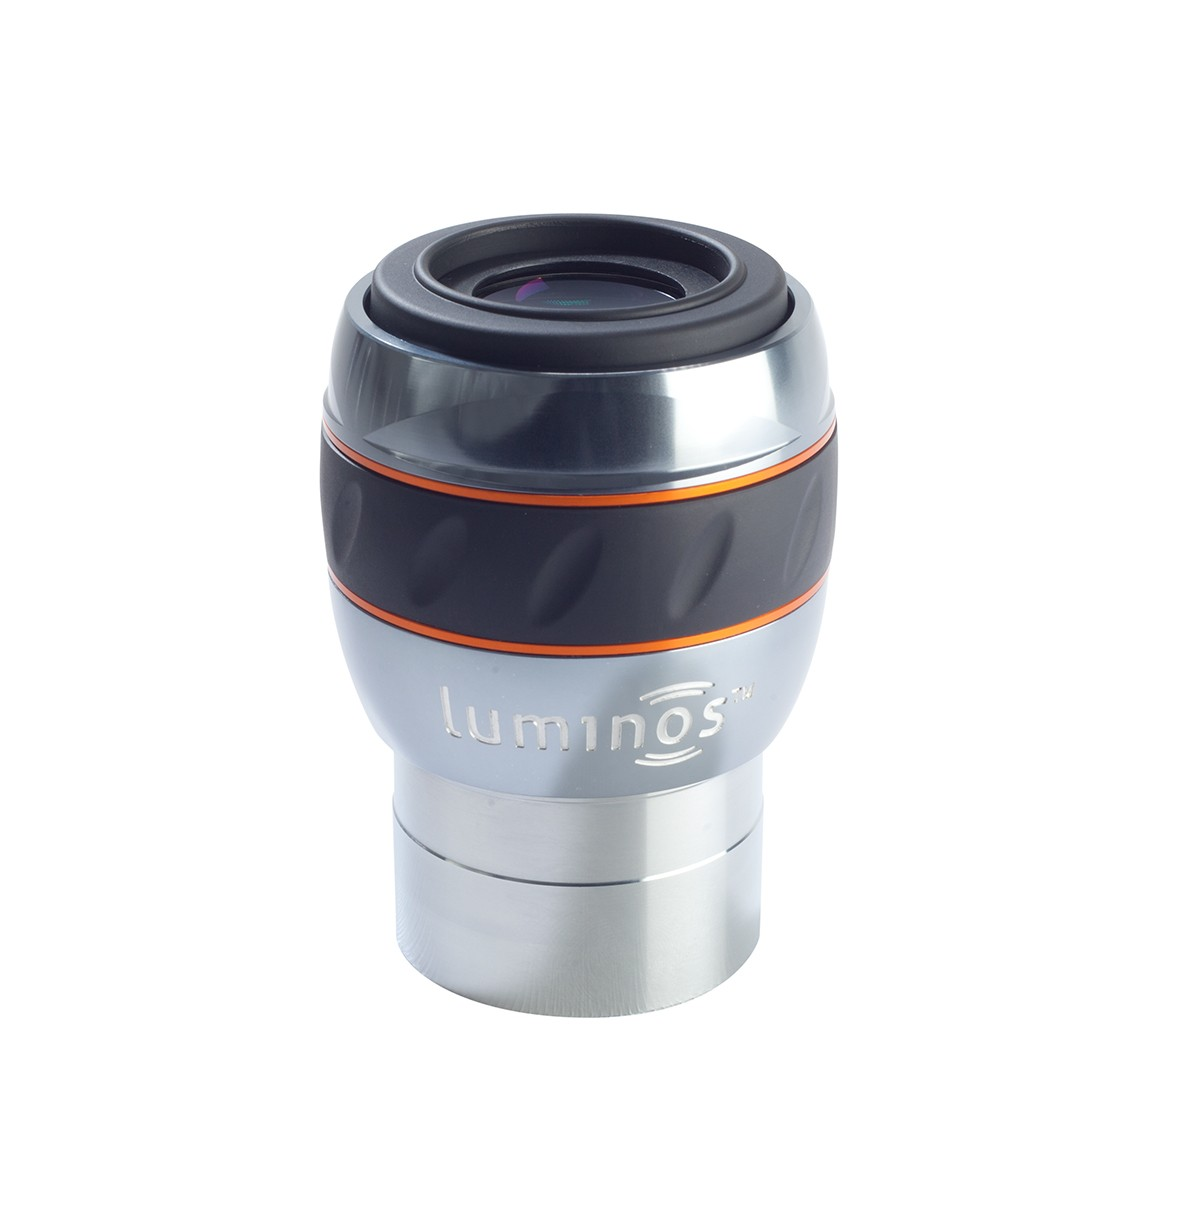 Luminos 19 mm